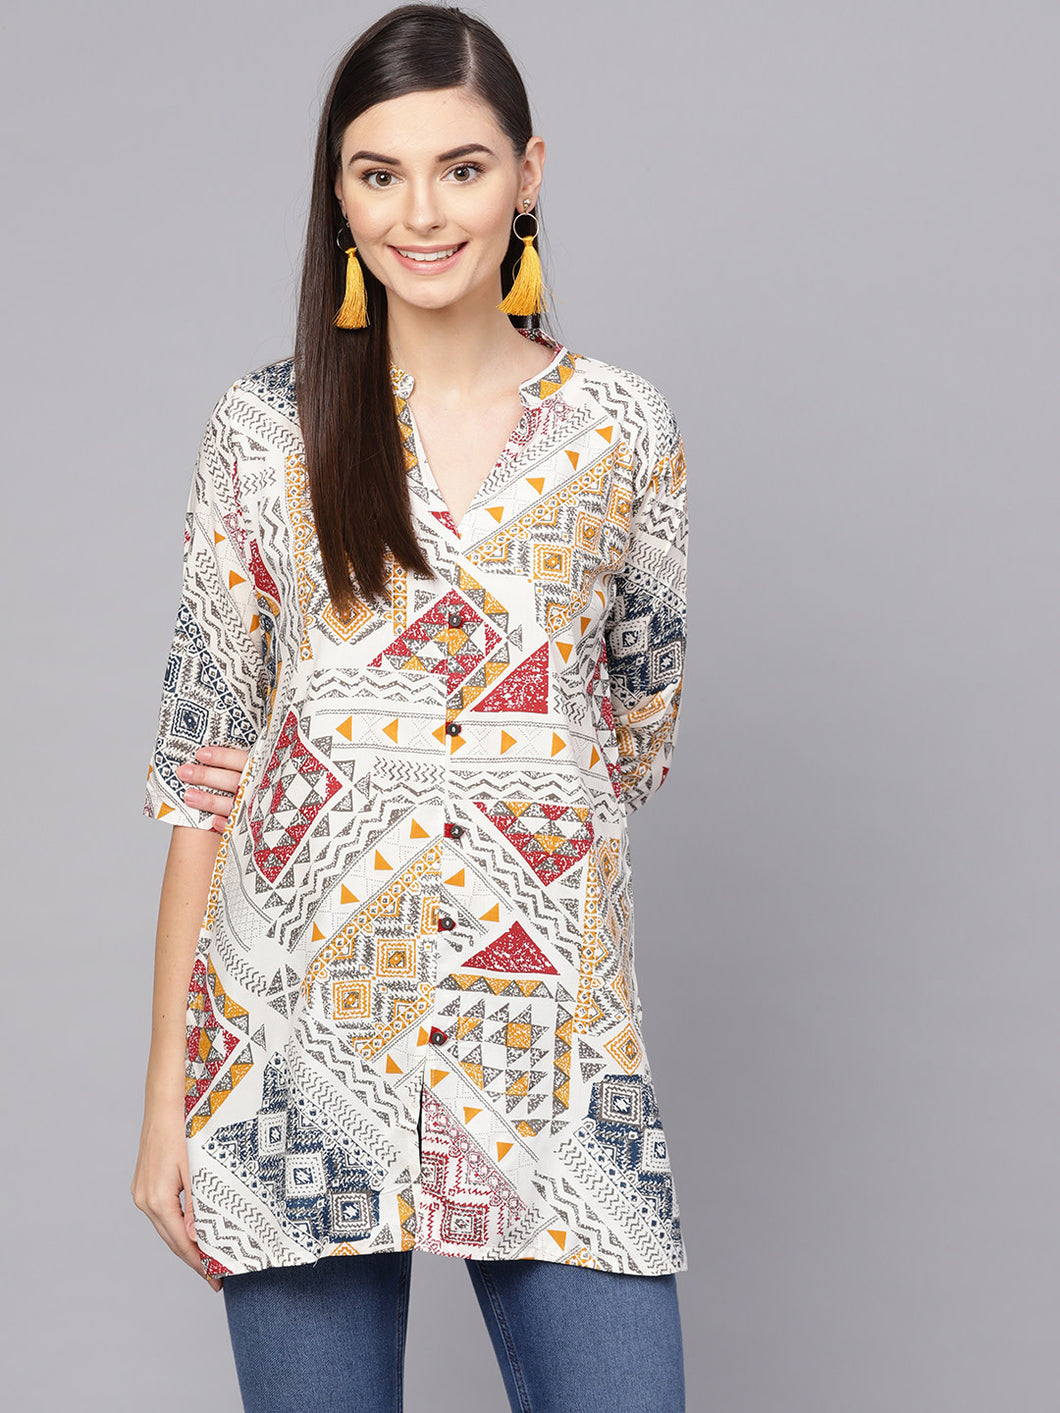 Queen ellie Women Off White & Mustard Yellow Printed Straight Kurti